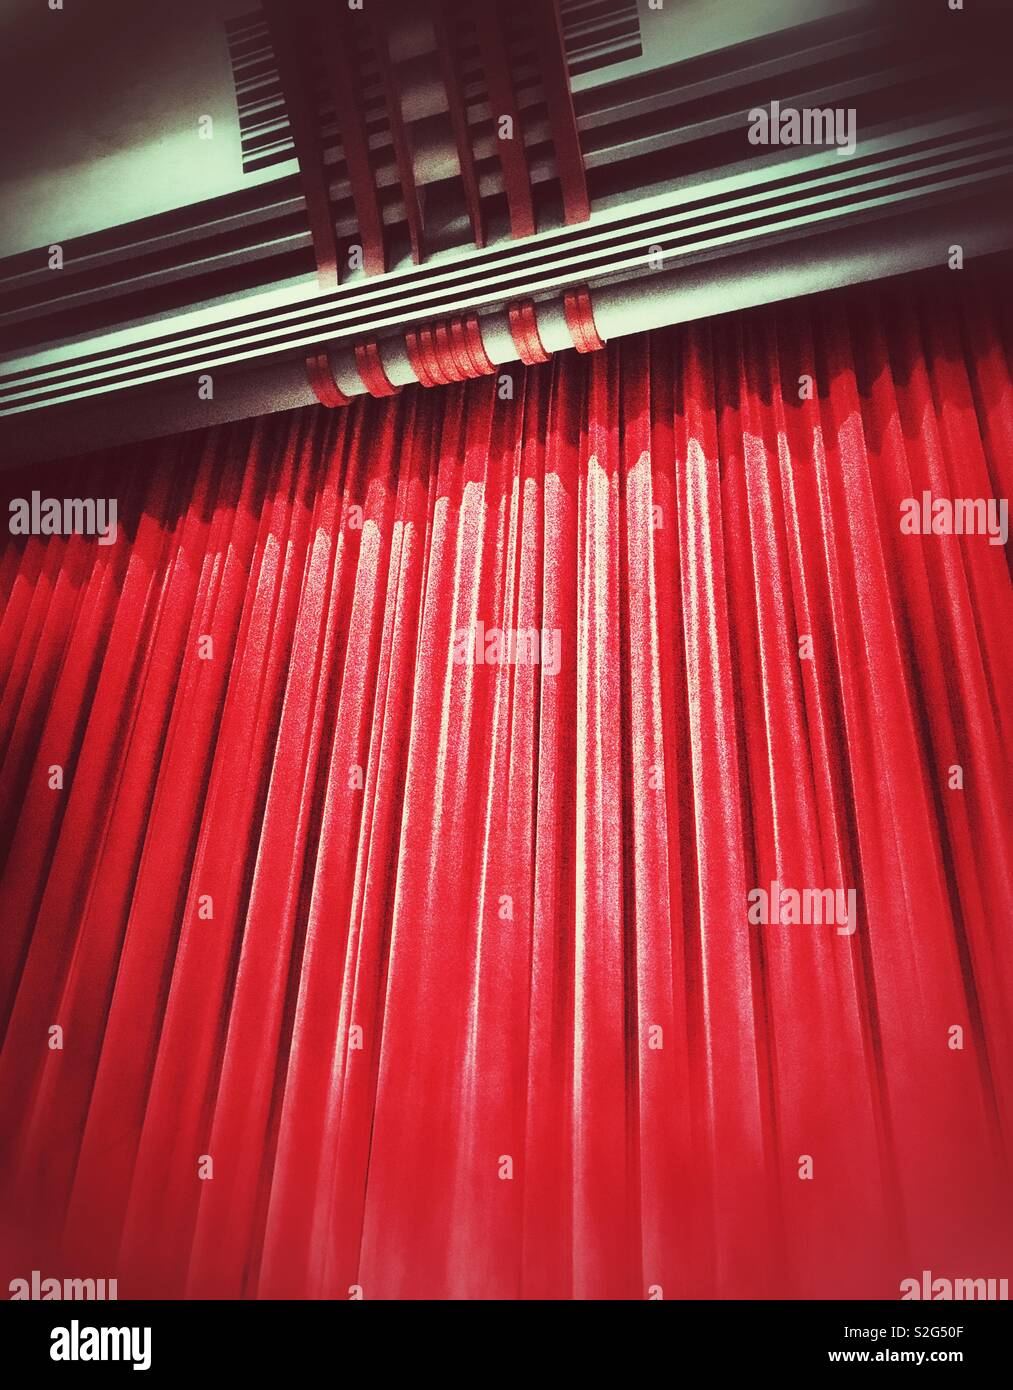 The red curtain at the end of a theatre show - Stock Image